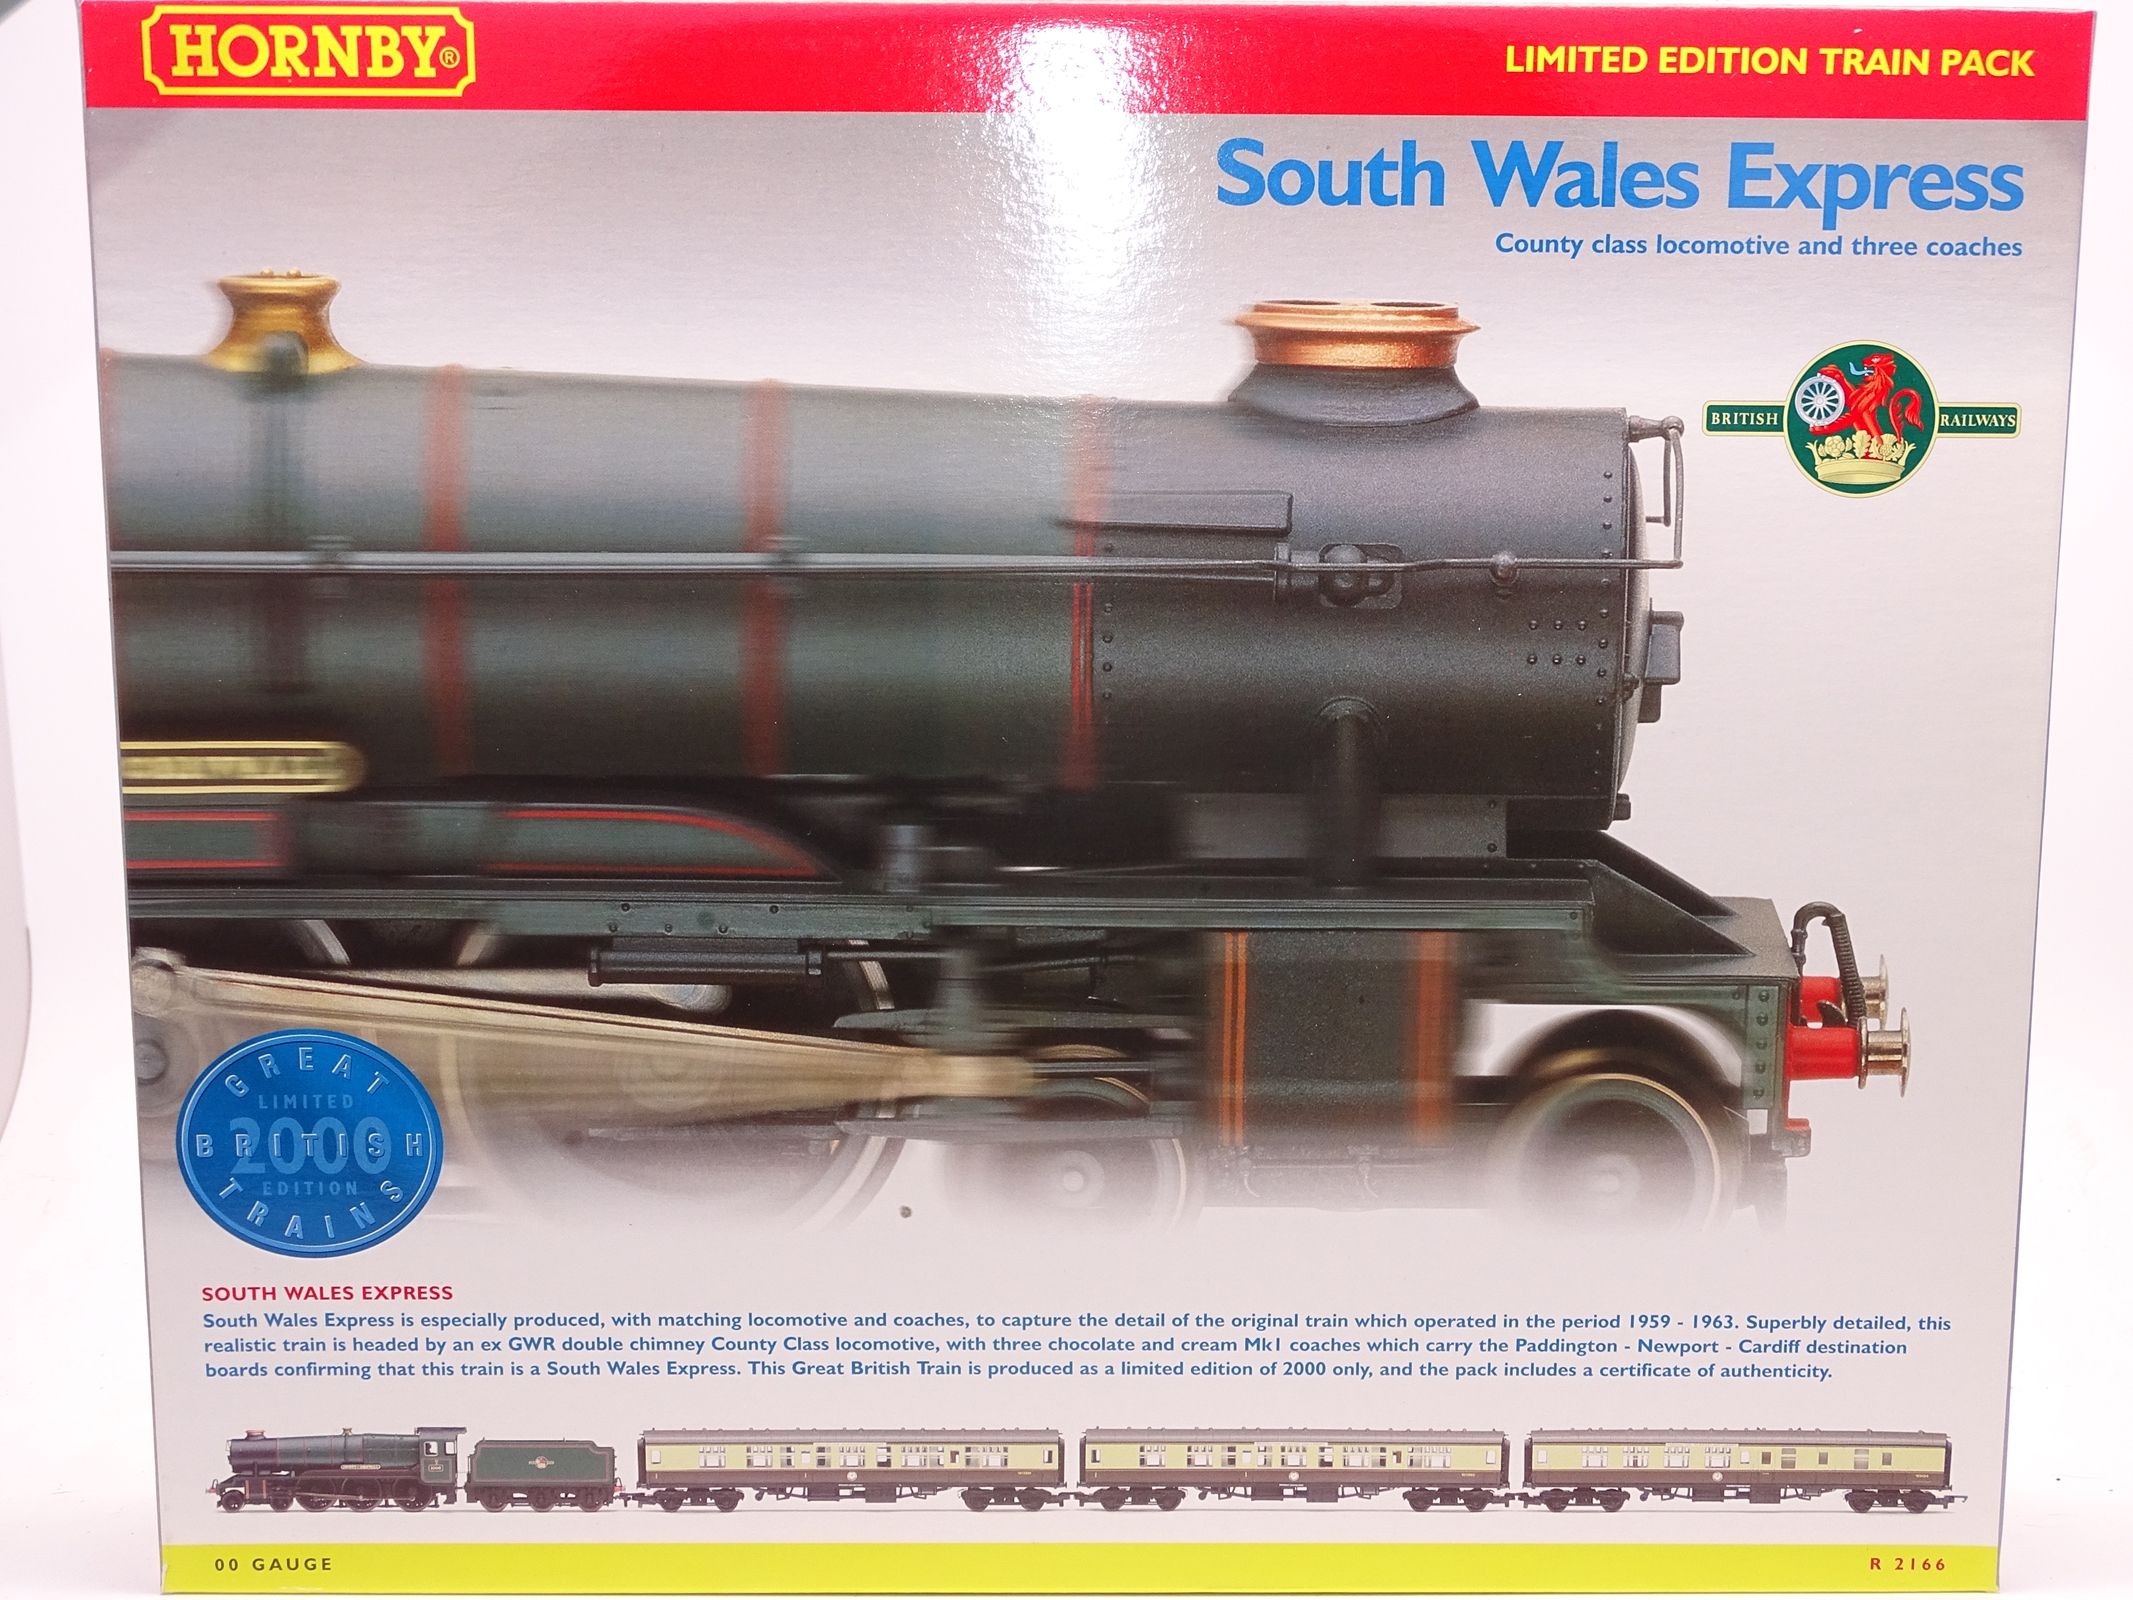 Lot 58 - OO Gauge -A Hornby R2166 'South Wales Express' train pack including steam loco and 3 coaches - E,